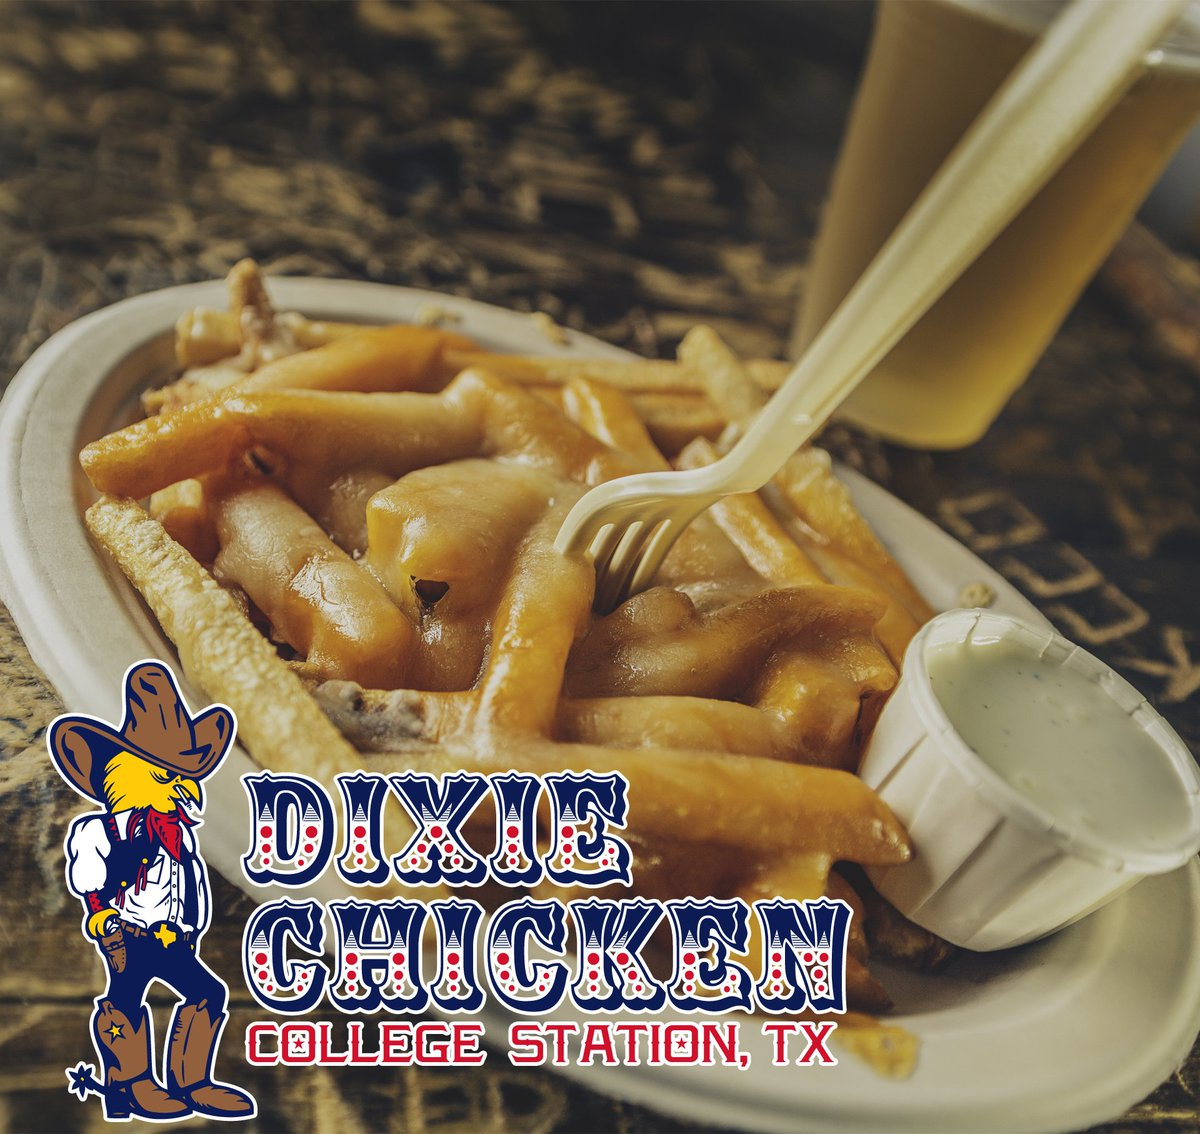 It's hard to beat classic #TFries from the #DixieChicken! https://t.co/5QwswDex1y